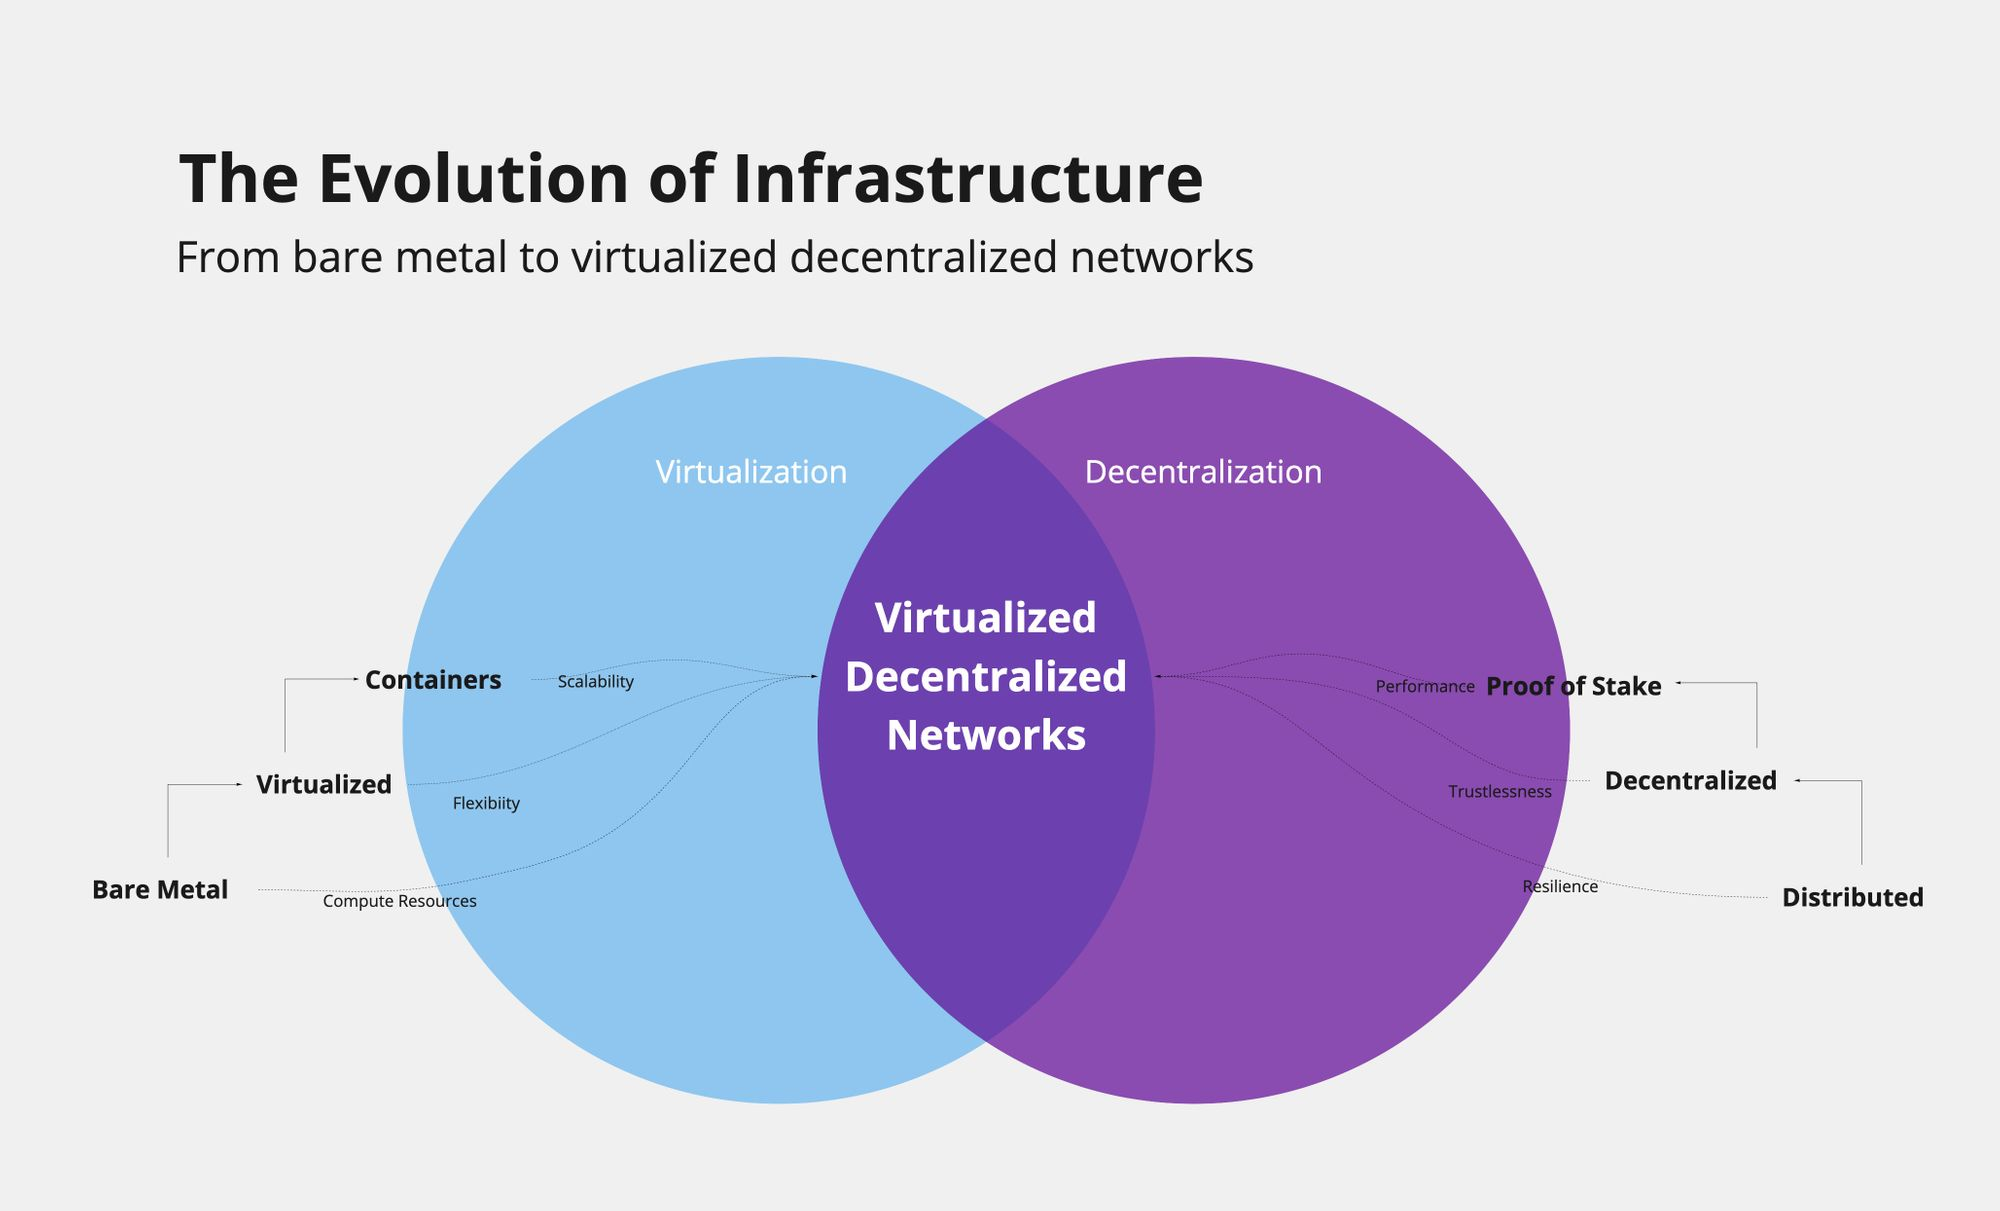 Containerization & The Future of Decentralized Infrastructure (Part 1 of 2)